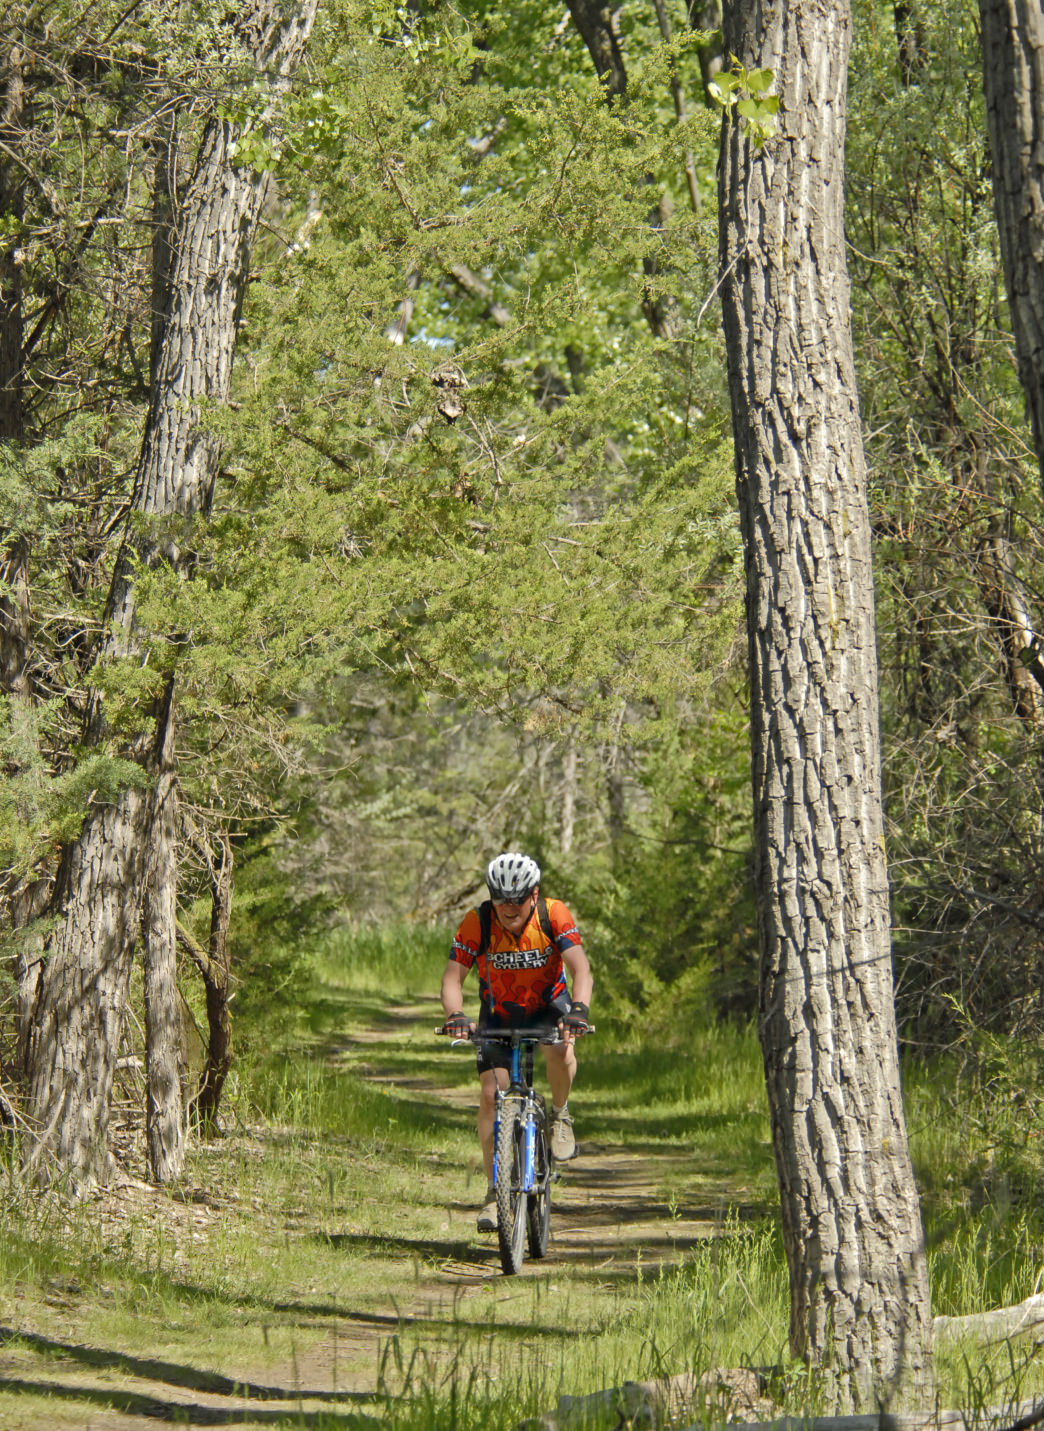 On an island in the Missouri River, the LaFramboise Island Nature Area offers many miles of flat singletrack trails.